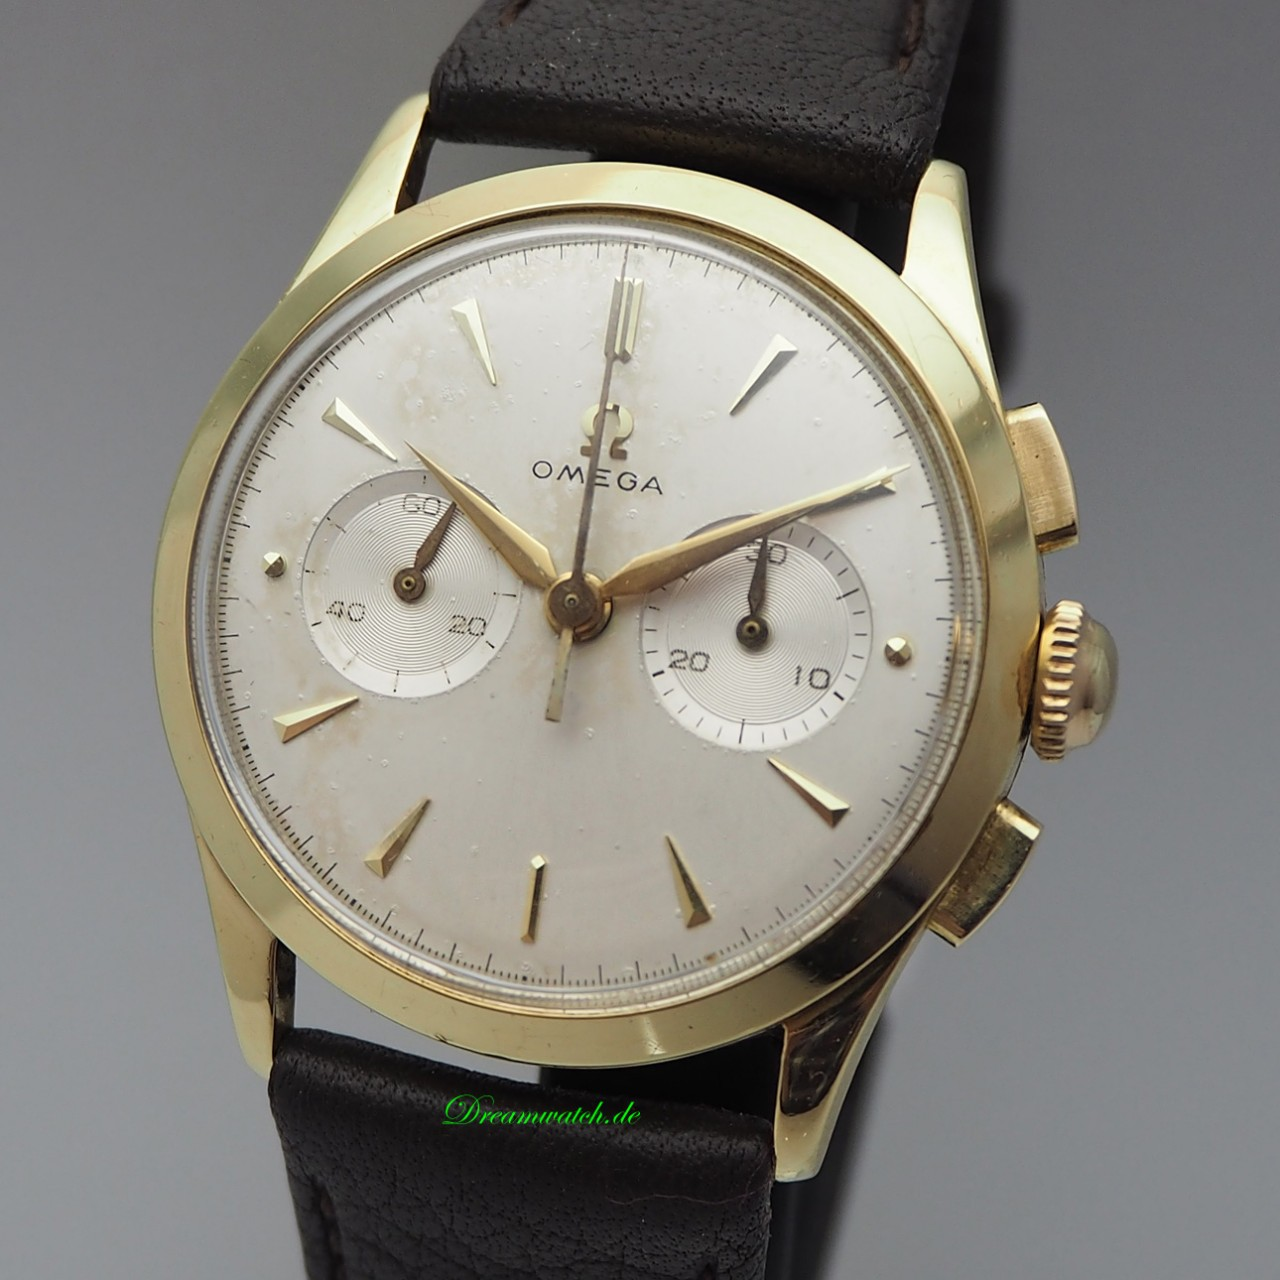 Omega Vintage Chronograph 2-Register Cal. 320 -18k/750 Gold from 1957